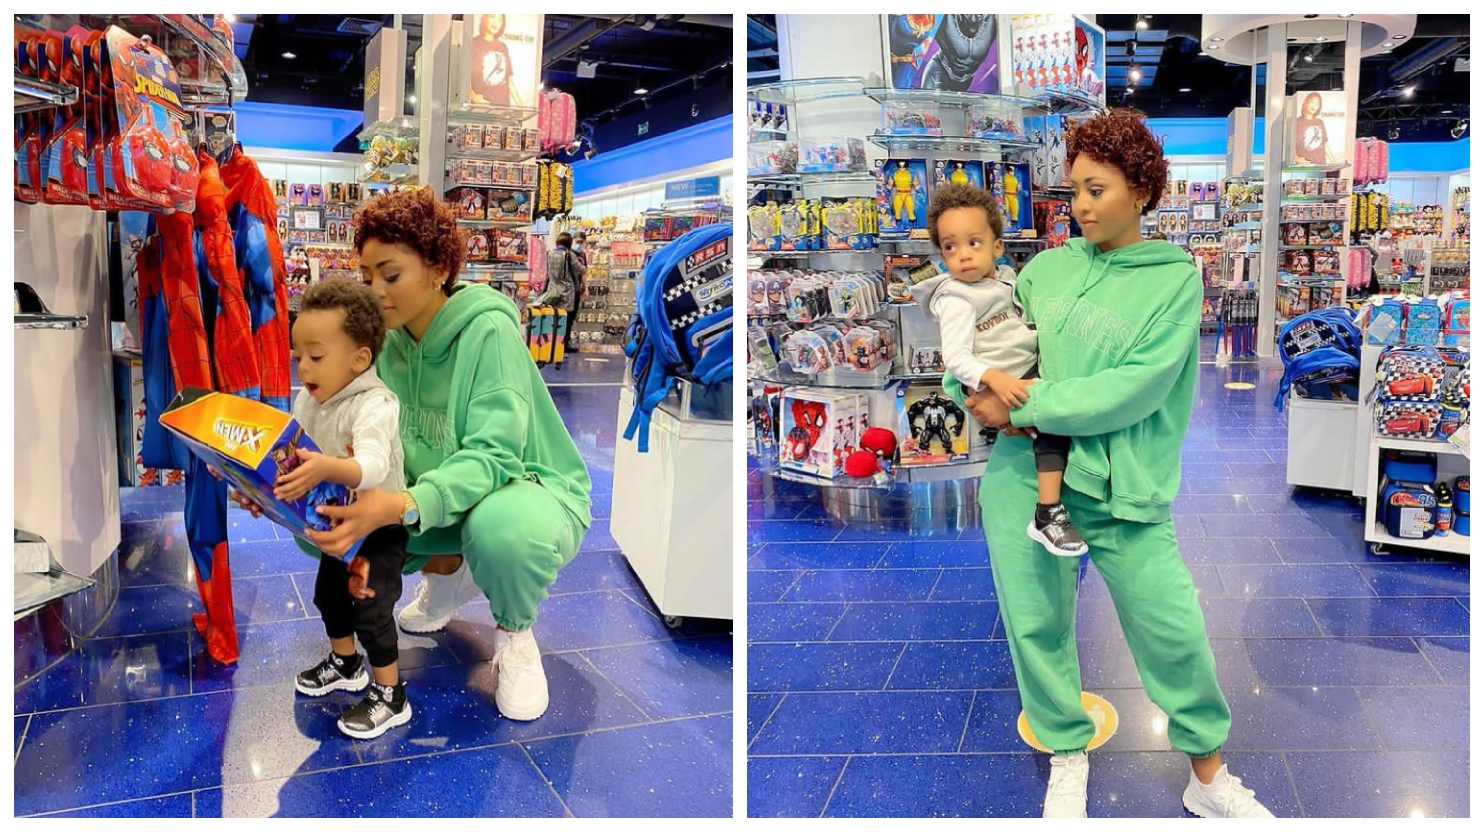 Nollywood actress, Regina Daniels releases adorable 4 new photos with her cute son today